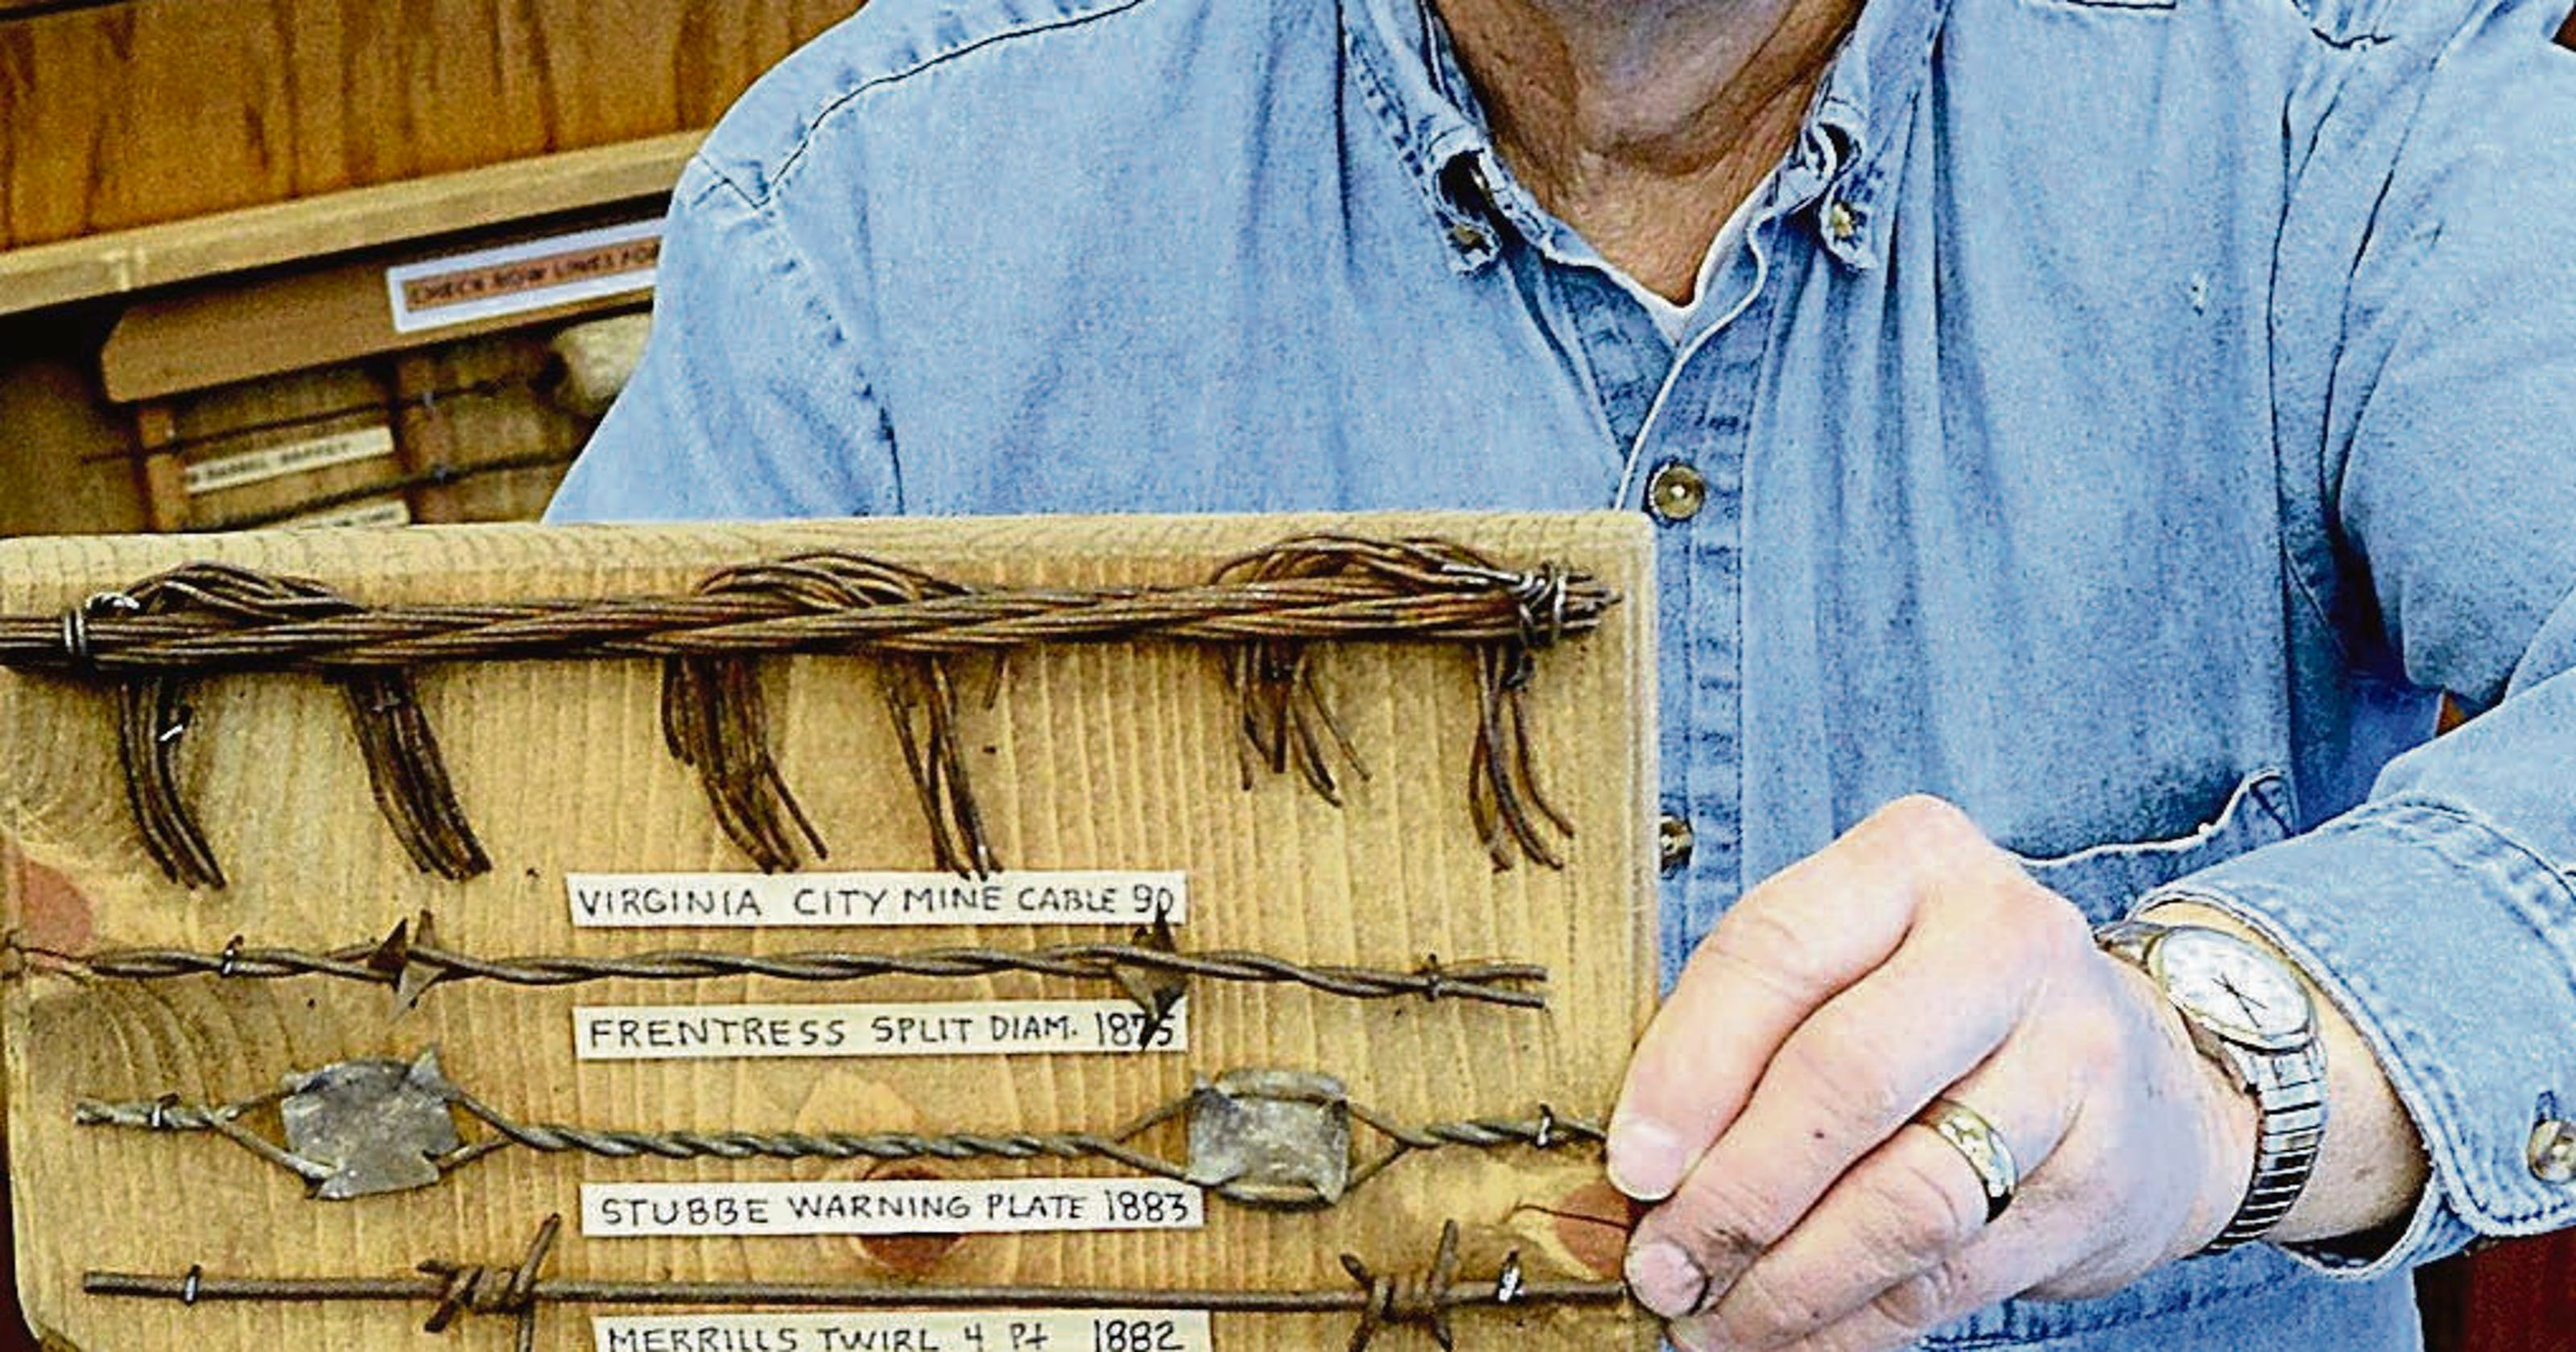 Barbed wire collector: Finds bring back history